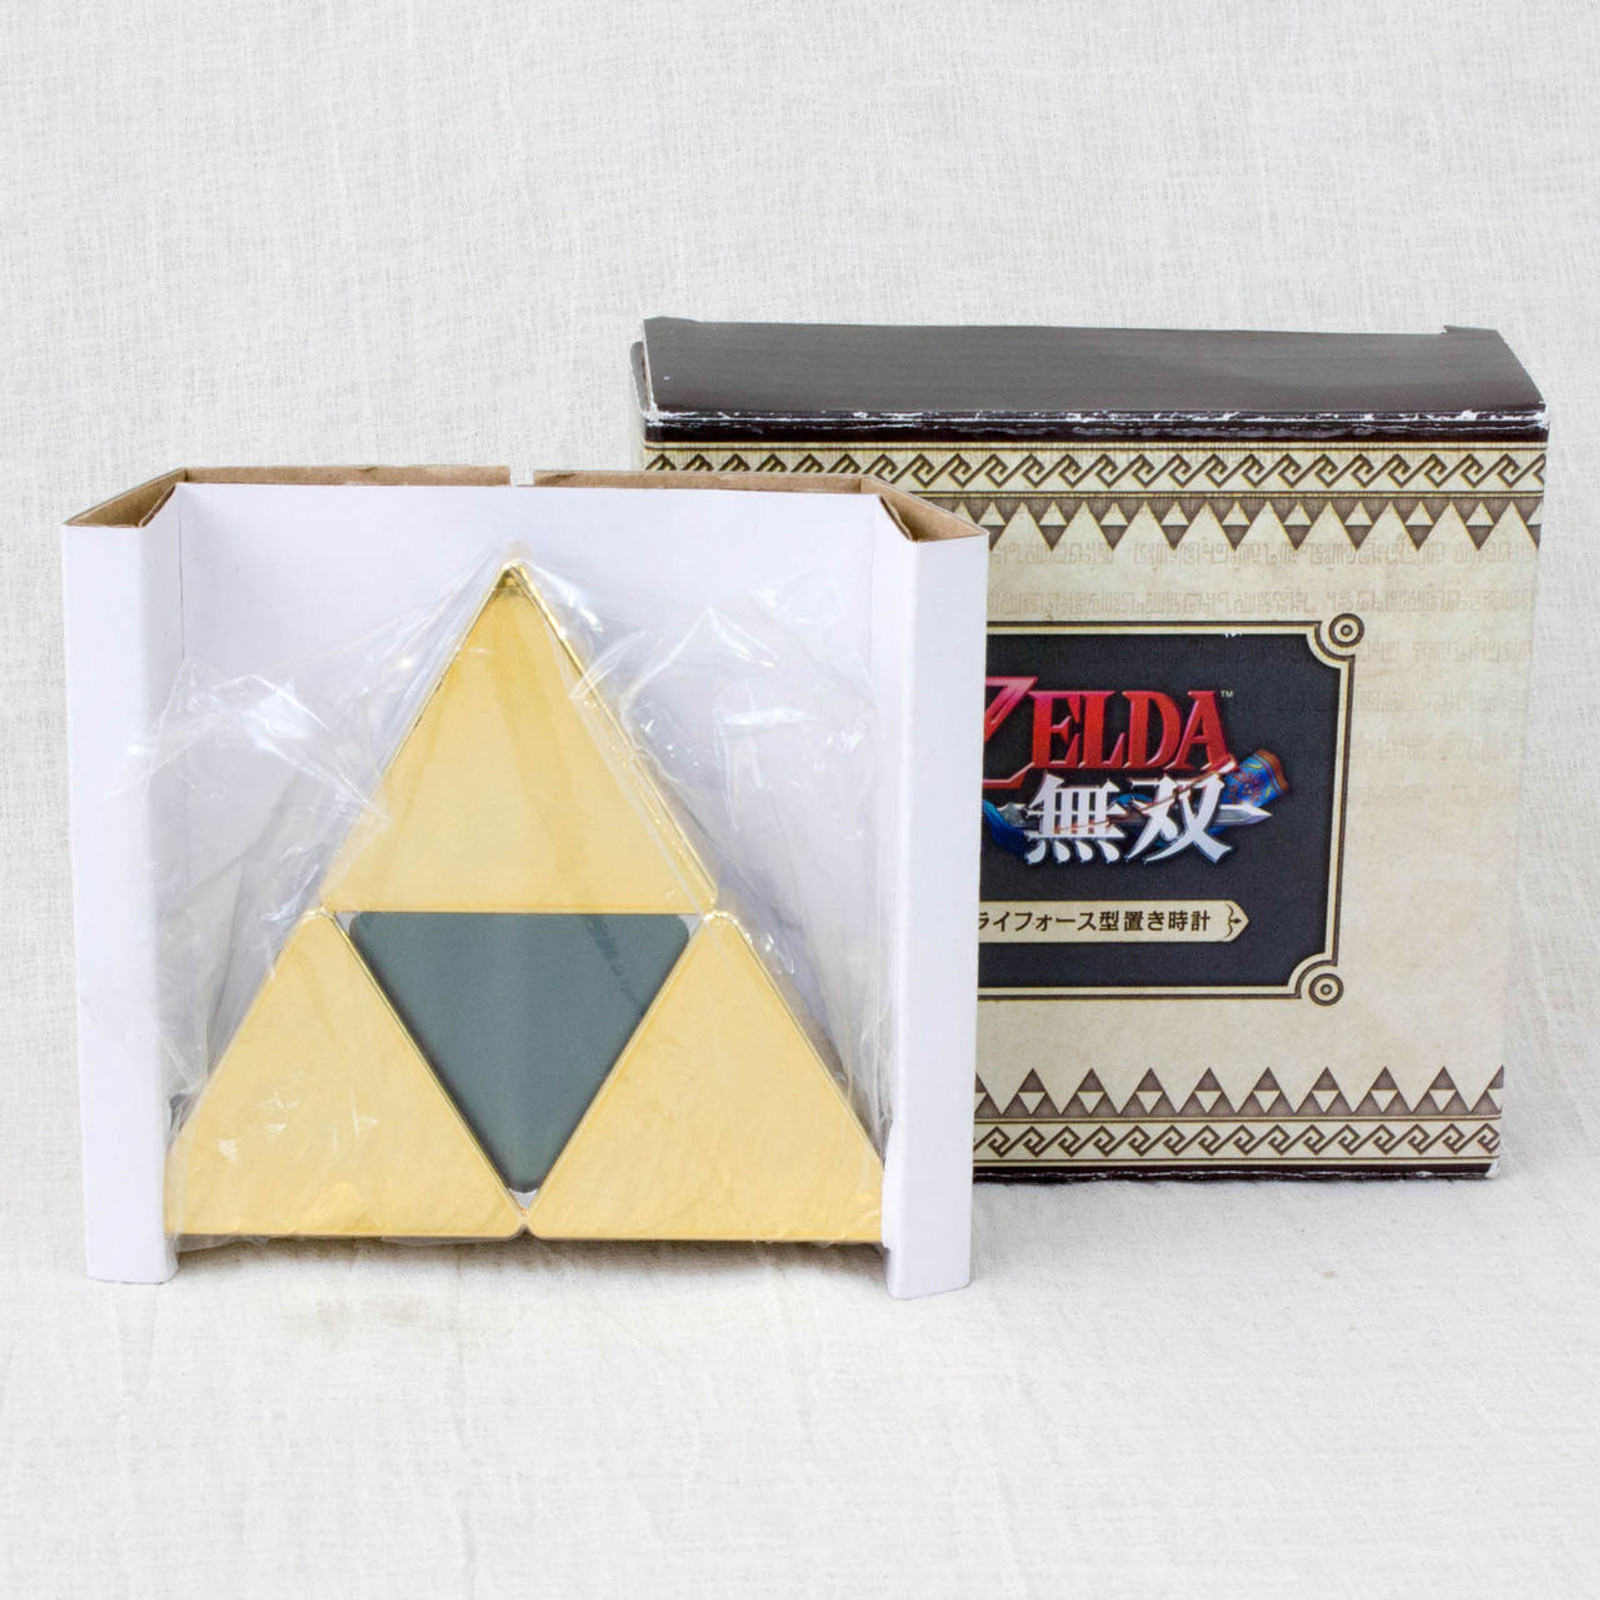 RARE! Zelda Muso Hyrule Warriors Tri-Force Type Alarm Clock JAPAN KOEI NINTENDO